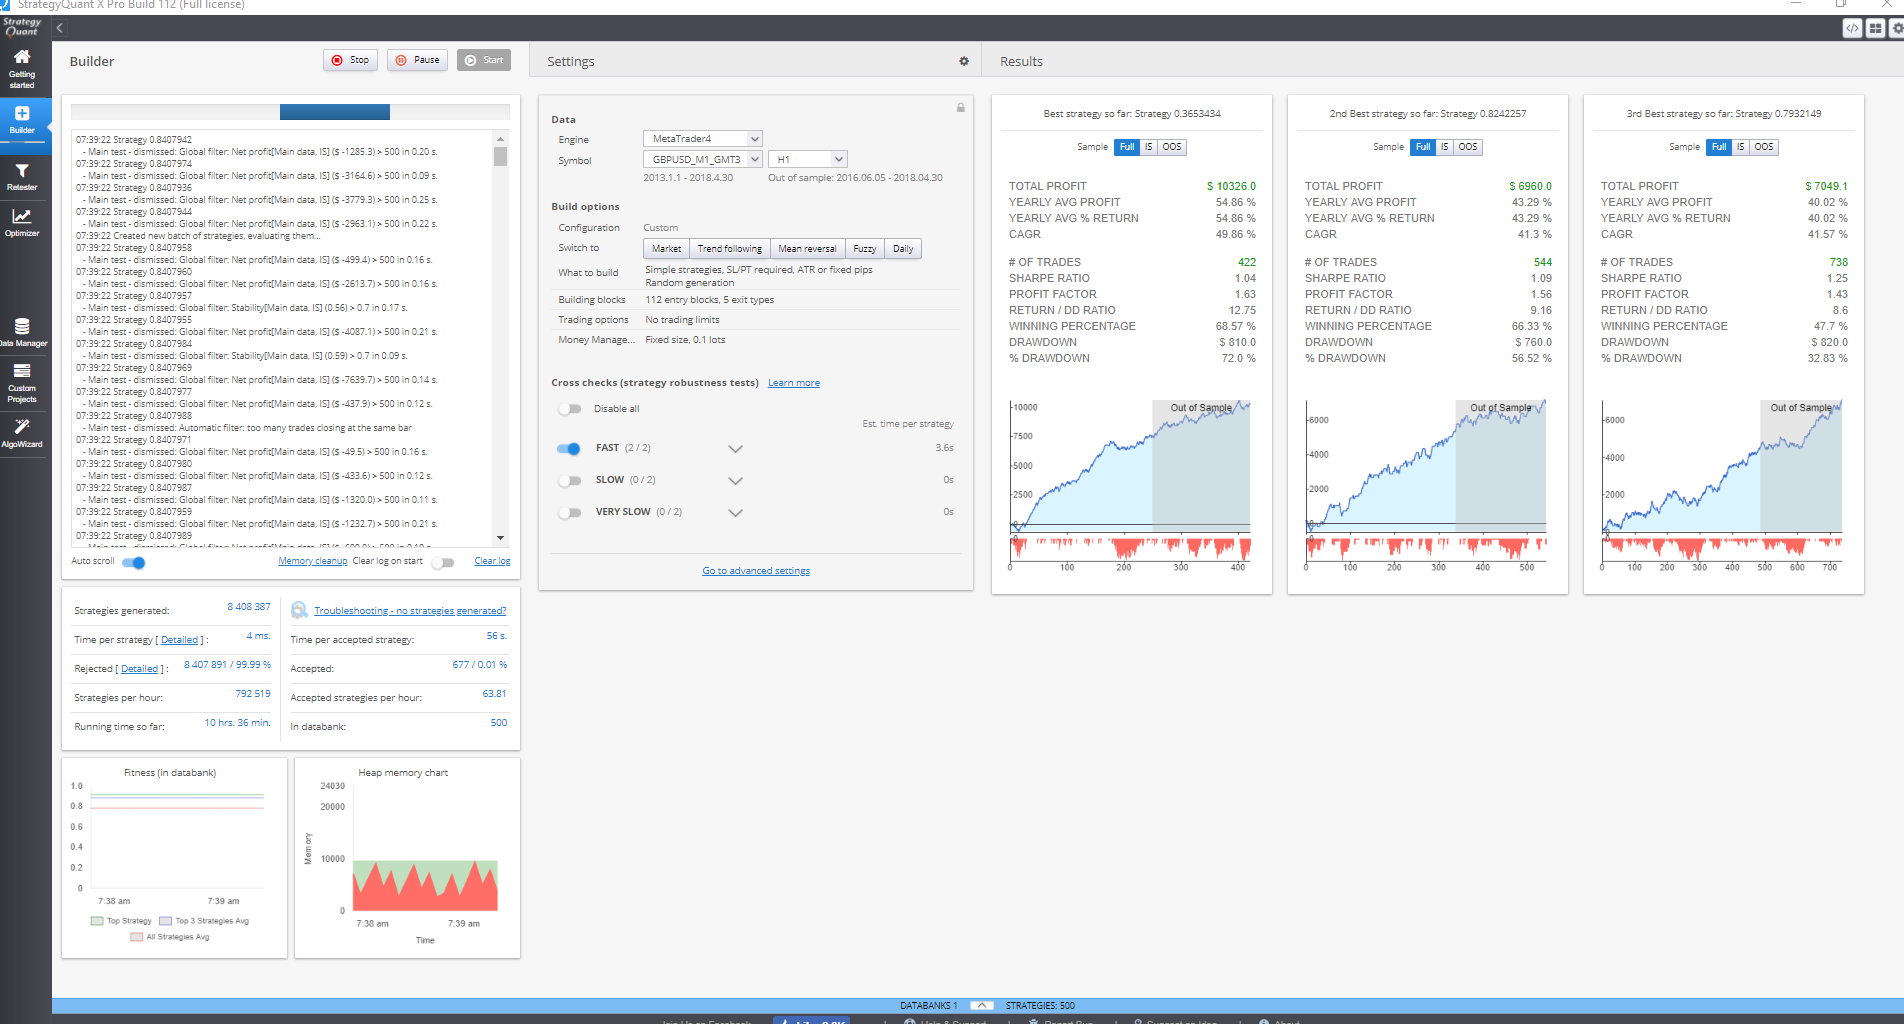 Build 113] Build 112 Back Screen - Strategy Quant